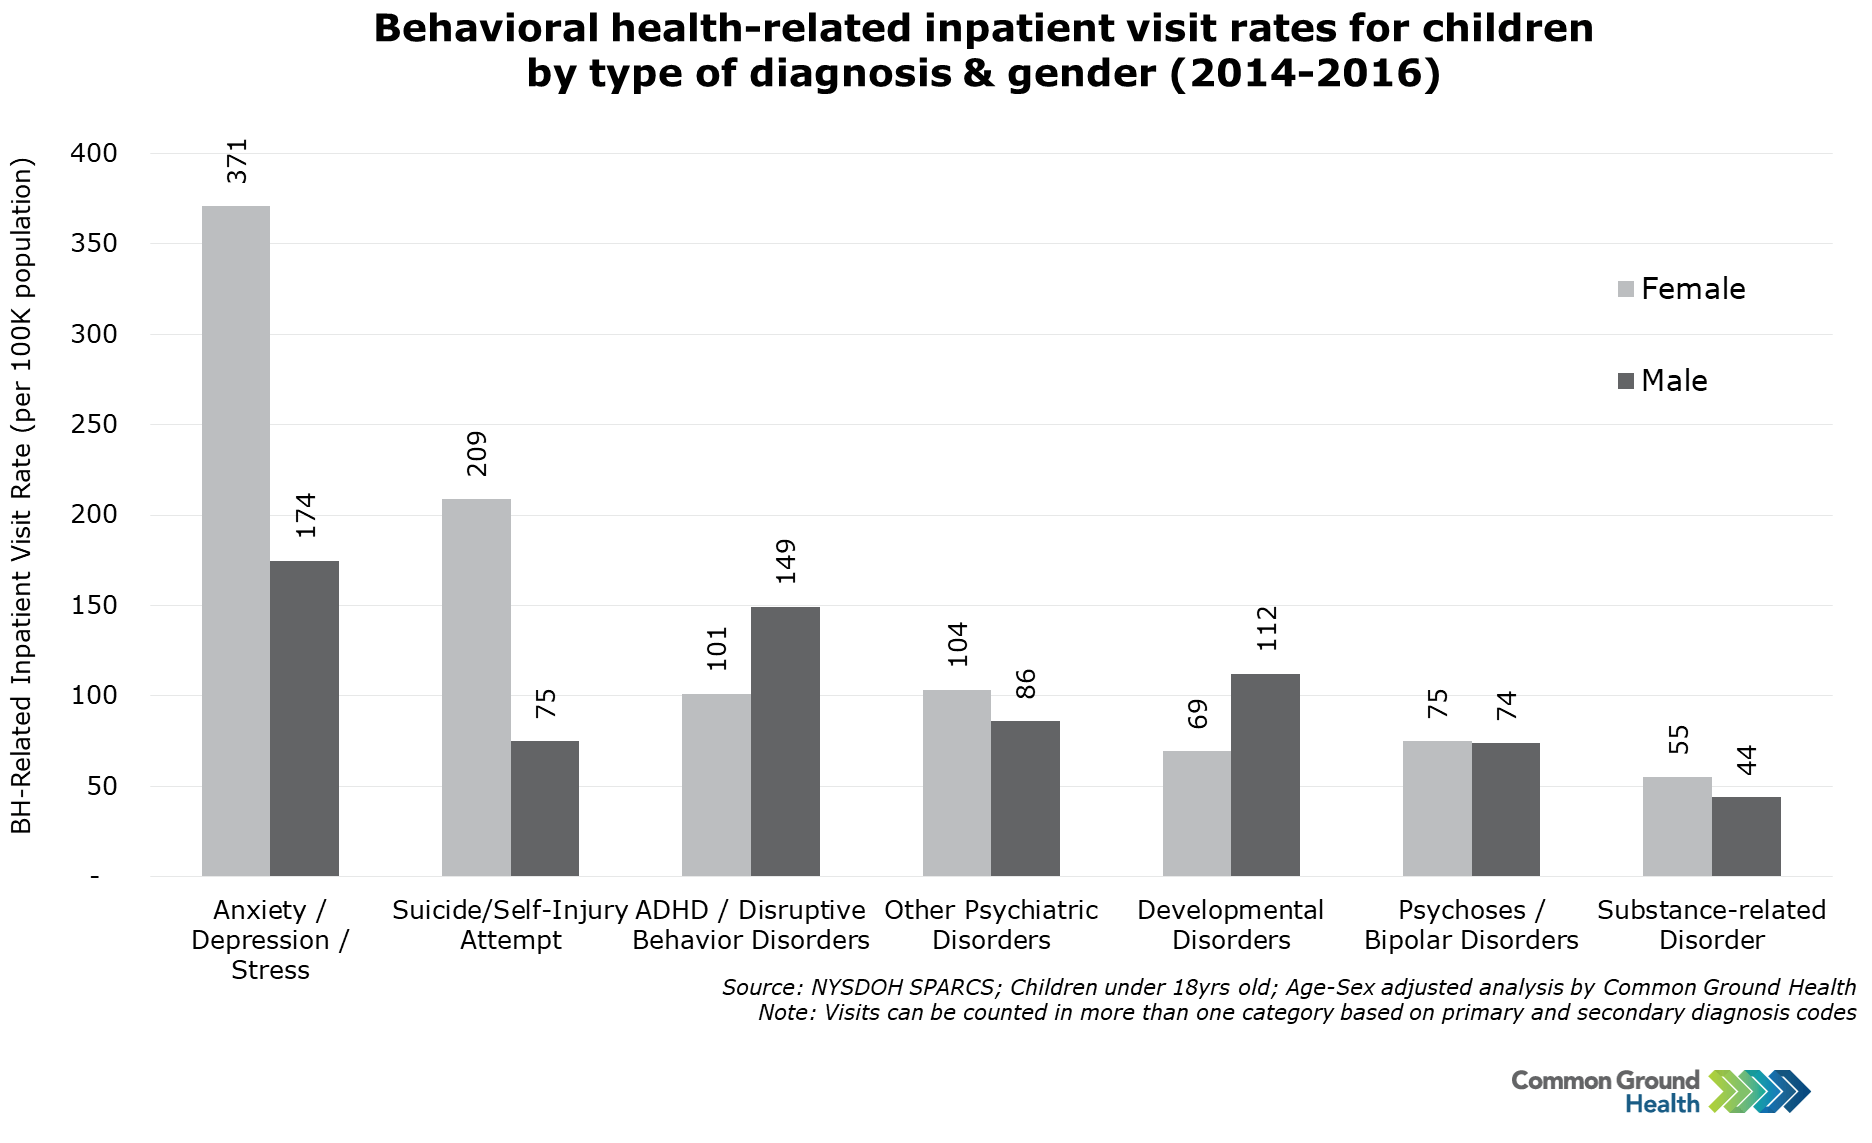 Behavioral Health-Related Inpatient Visit Rates for Children, Diagnosis & Gender